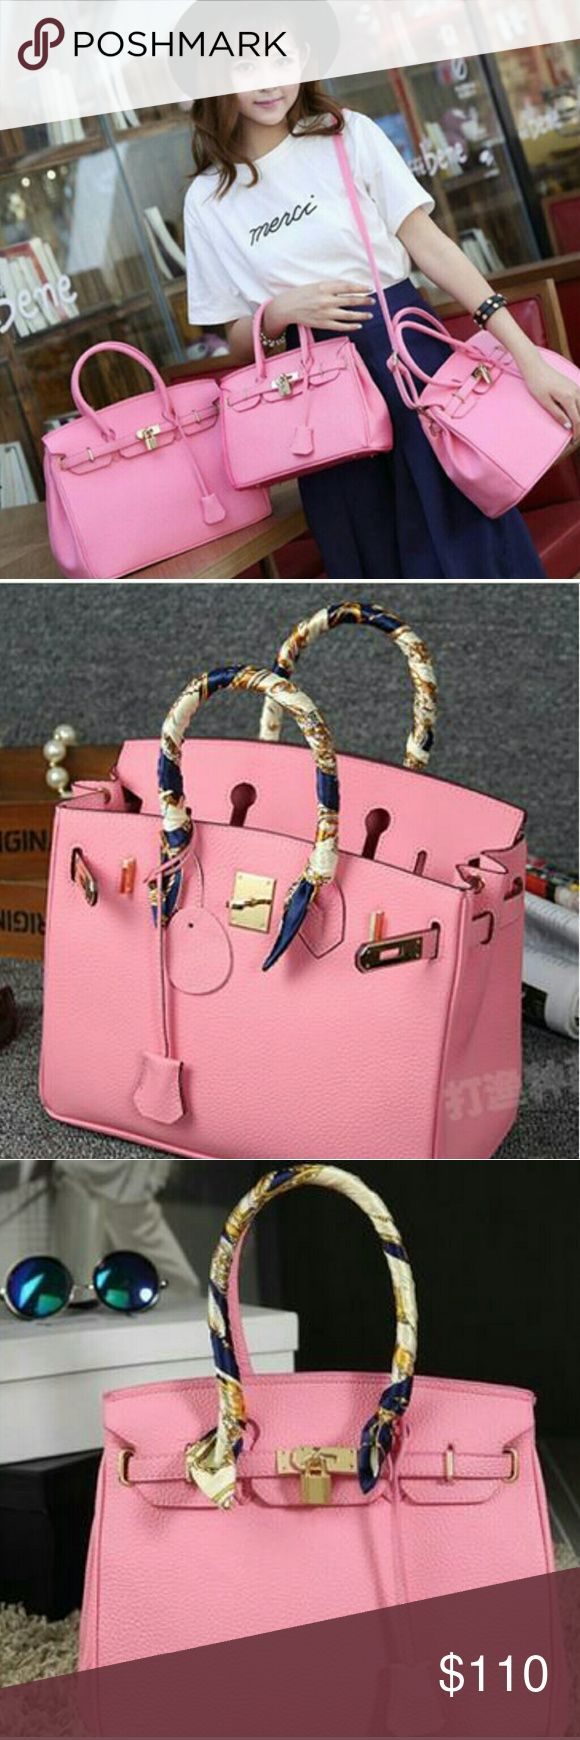 Bubblegum  Pink Berkin Style Handbag This style is like Berkin no brand name  very cute with the color of bubble gum pink.. Color:Pink  Size:Length '9 x Width '12 Materials: PU leather Bags Crossbody Bags